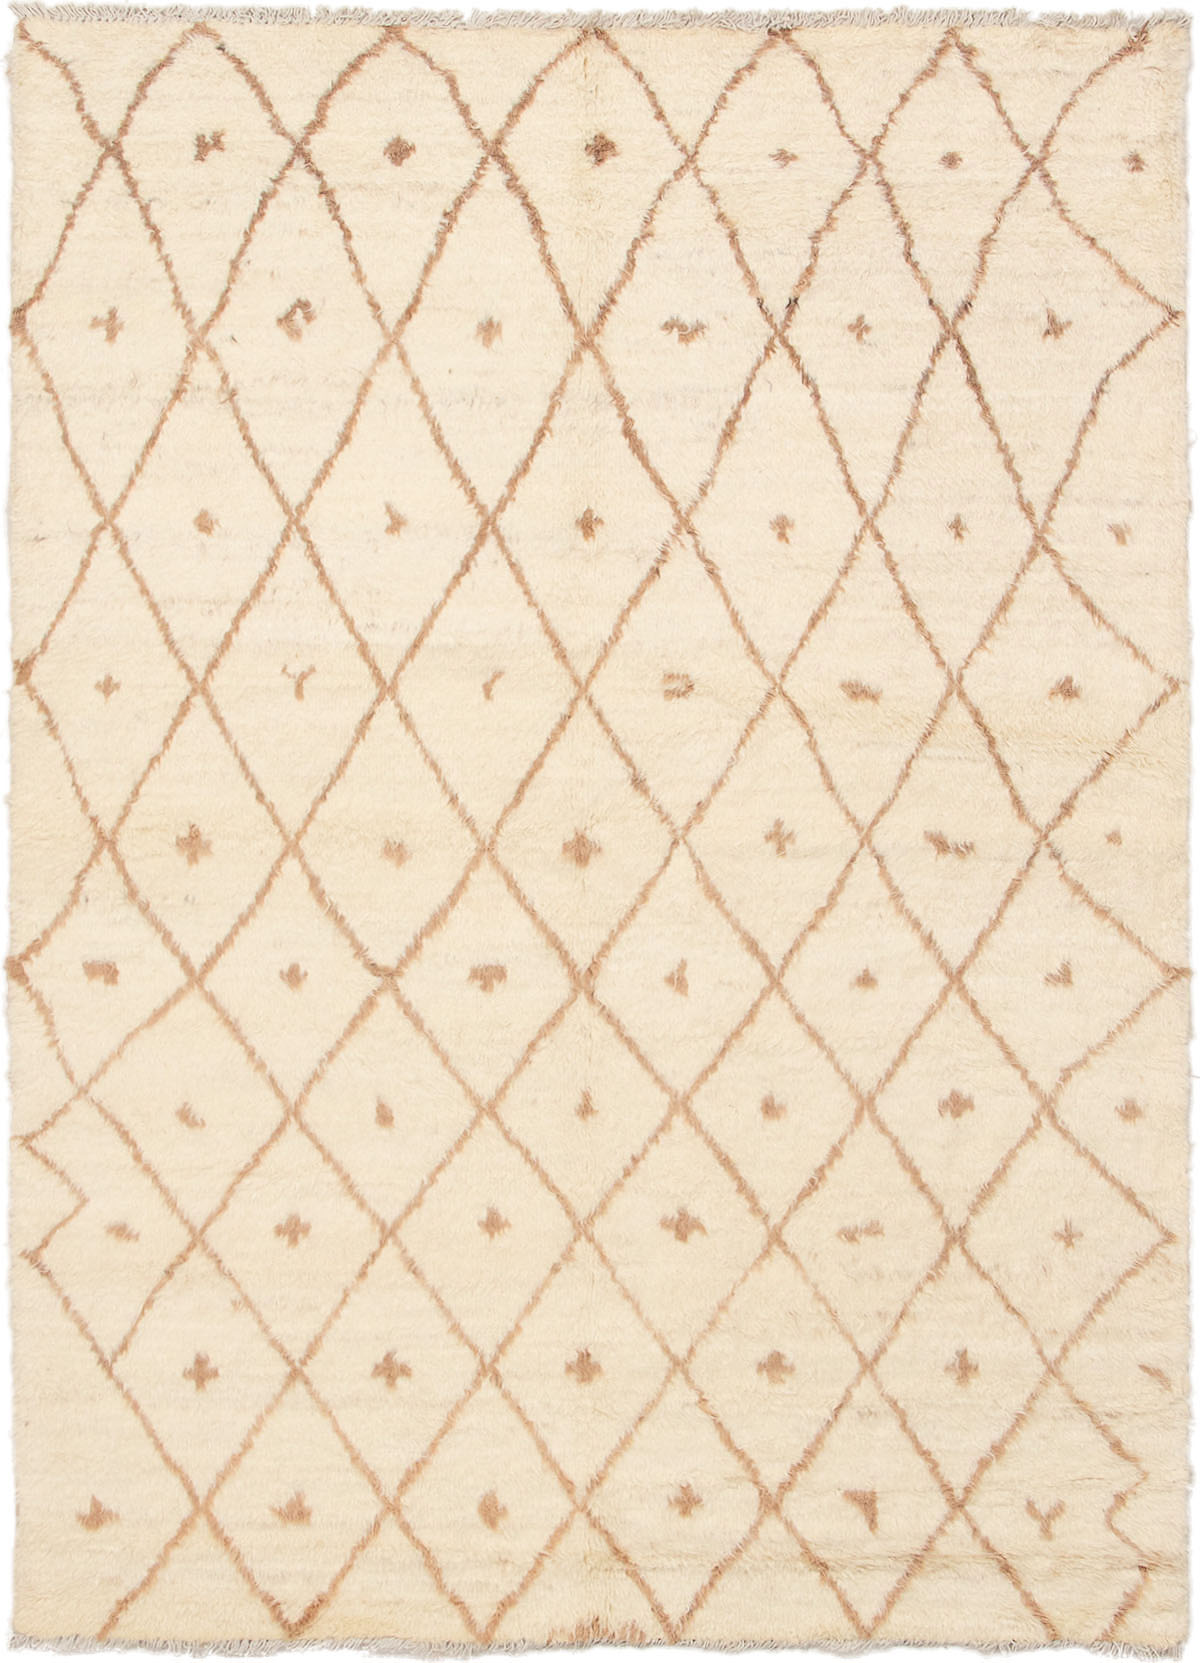 "Hand-knotted Tangier Cream Wool Rug 6'4"" x 8'10""  Size: 6'4"" x 8'10"""